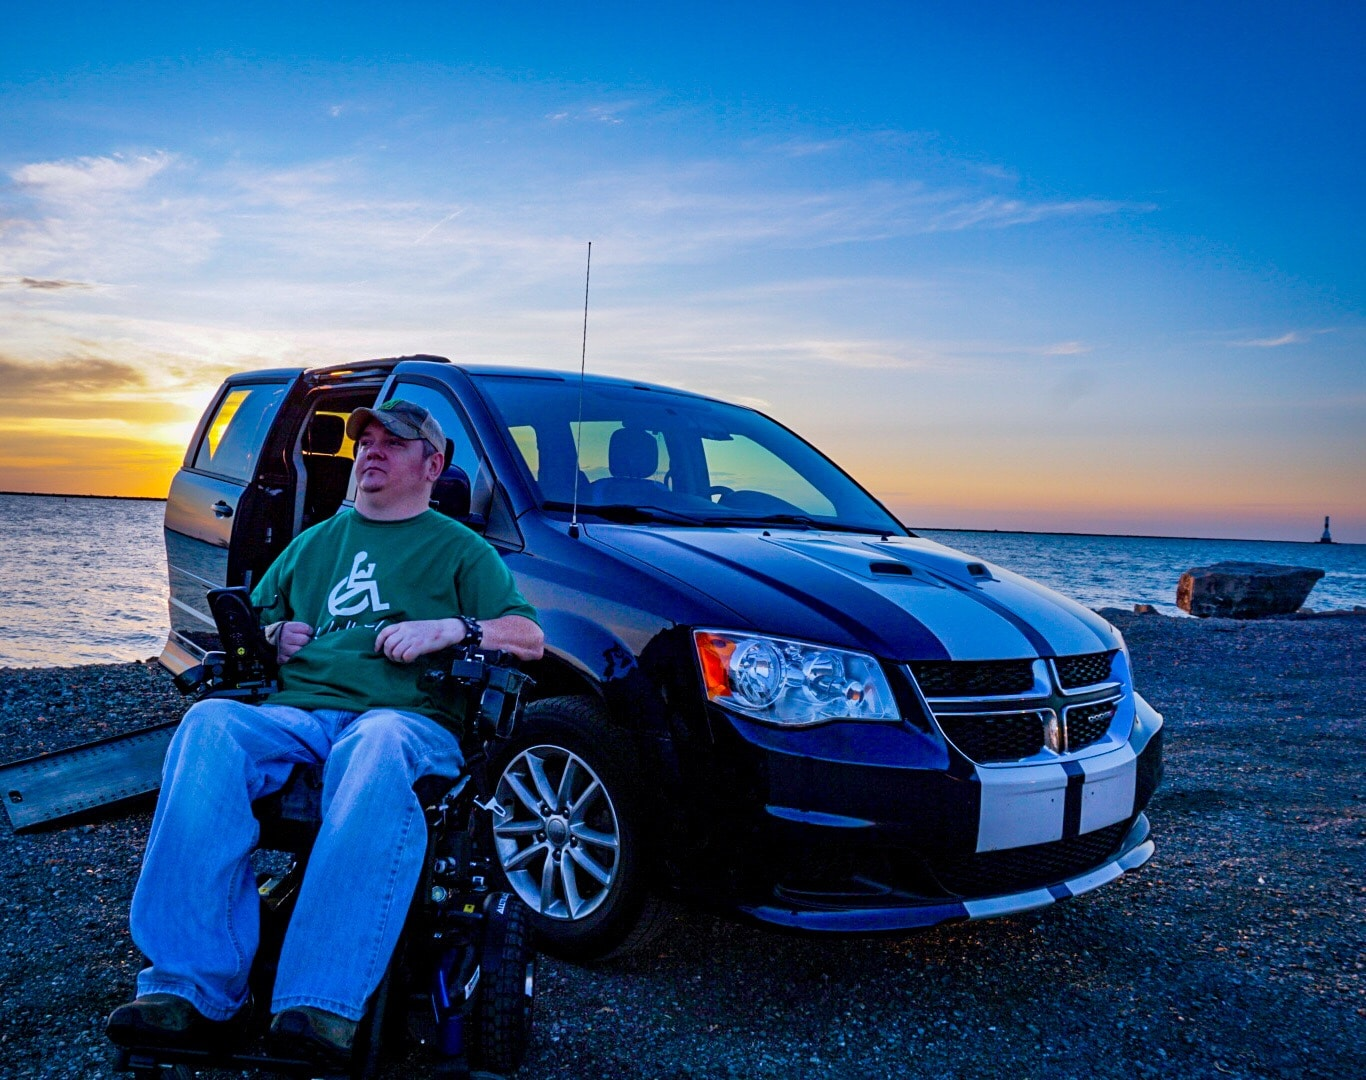 Tim Taylor sits in front of his accessible van. Lake Erie is in the background.